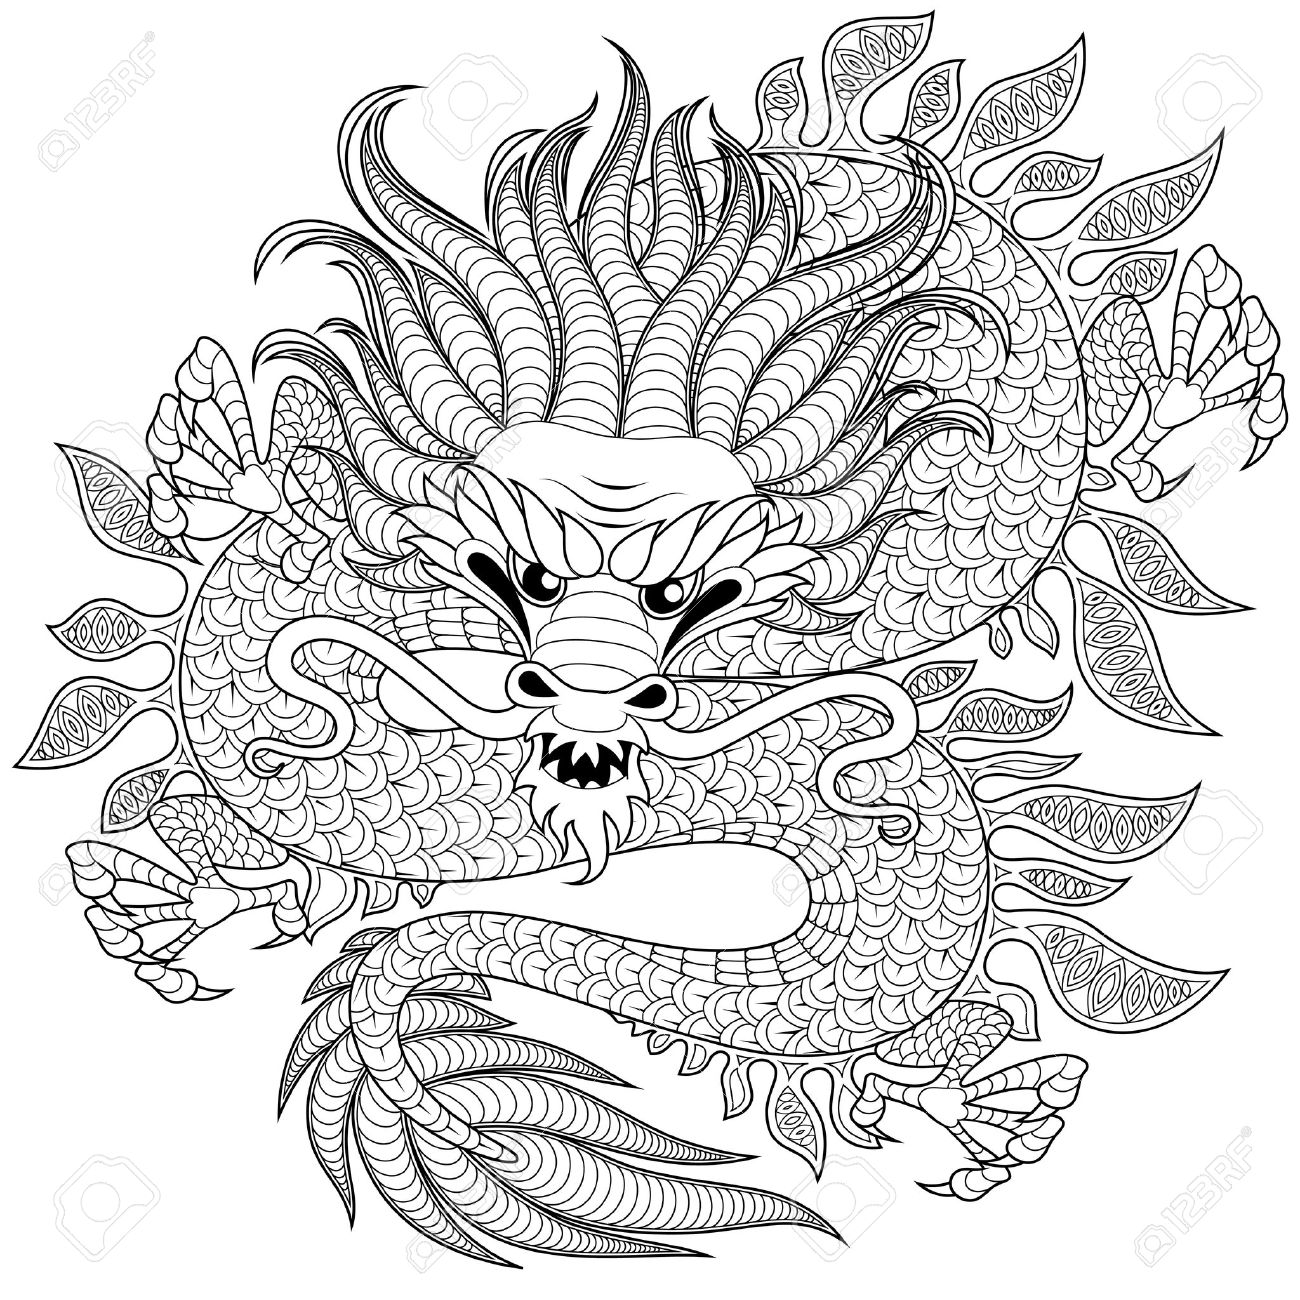 1300x1300 Chinese Dragon In Zentangle Style For Tatoo. Adult Antistress